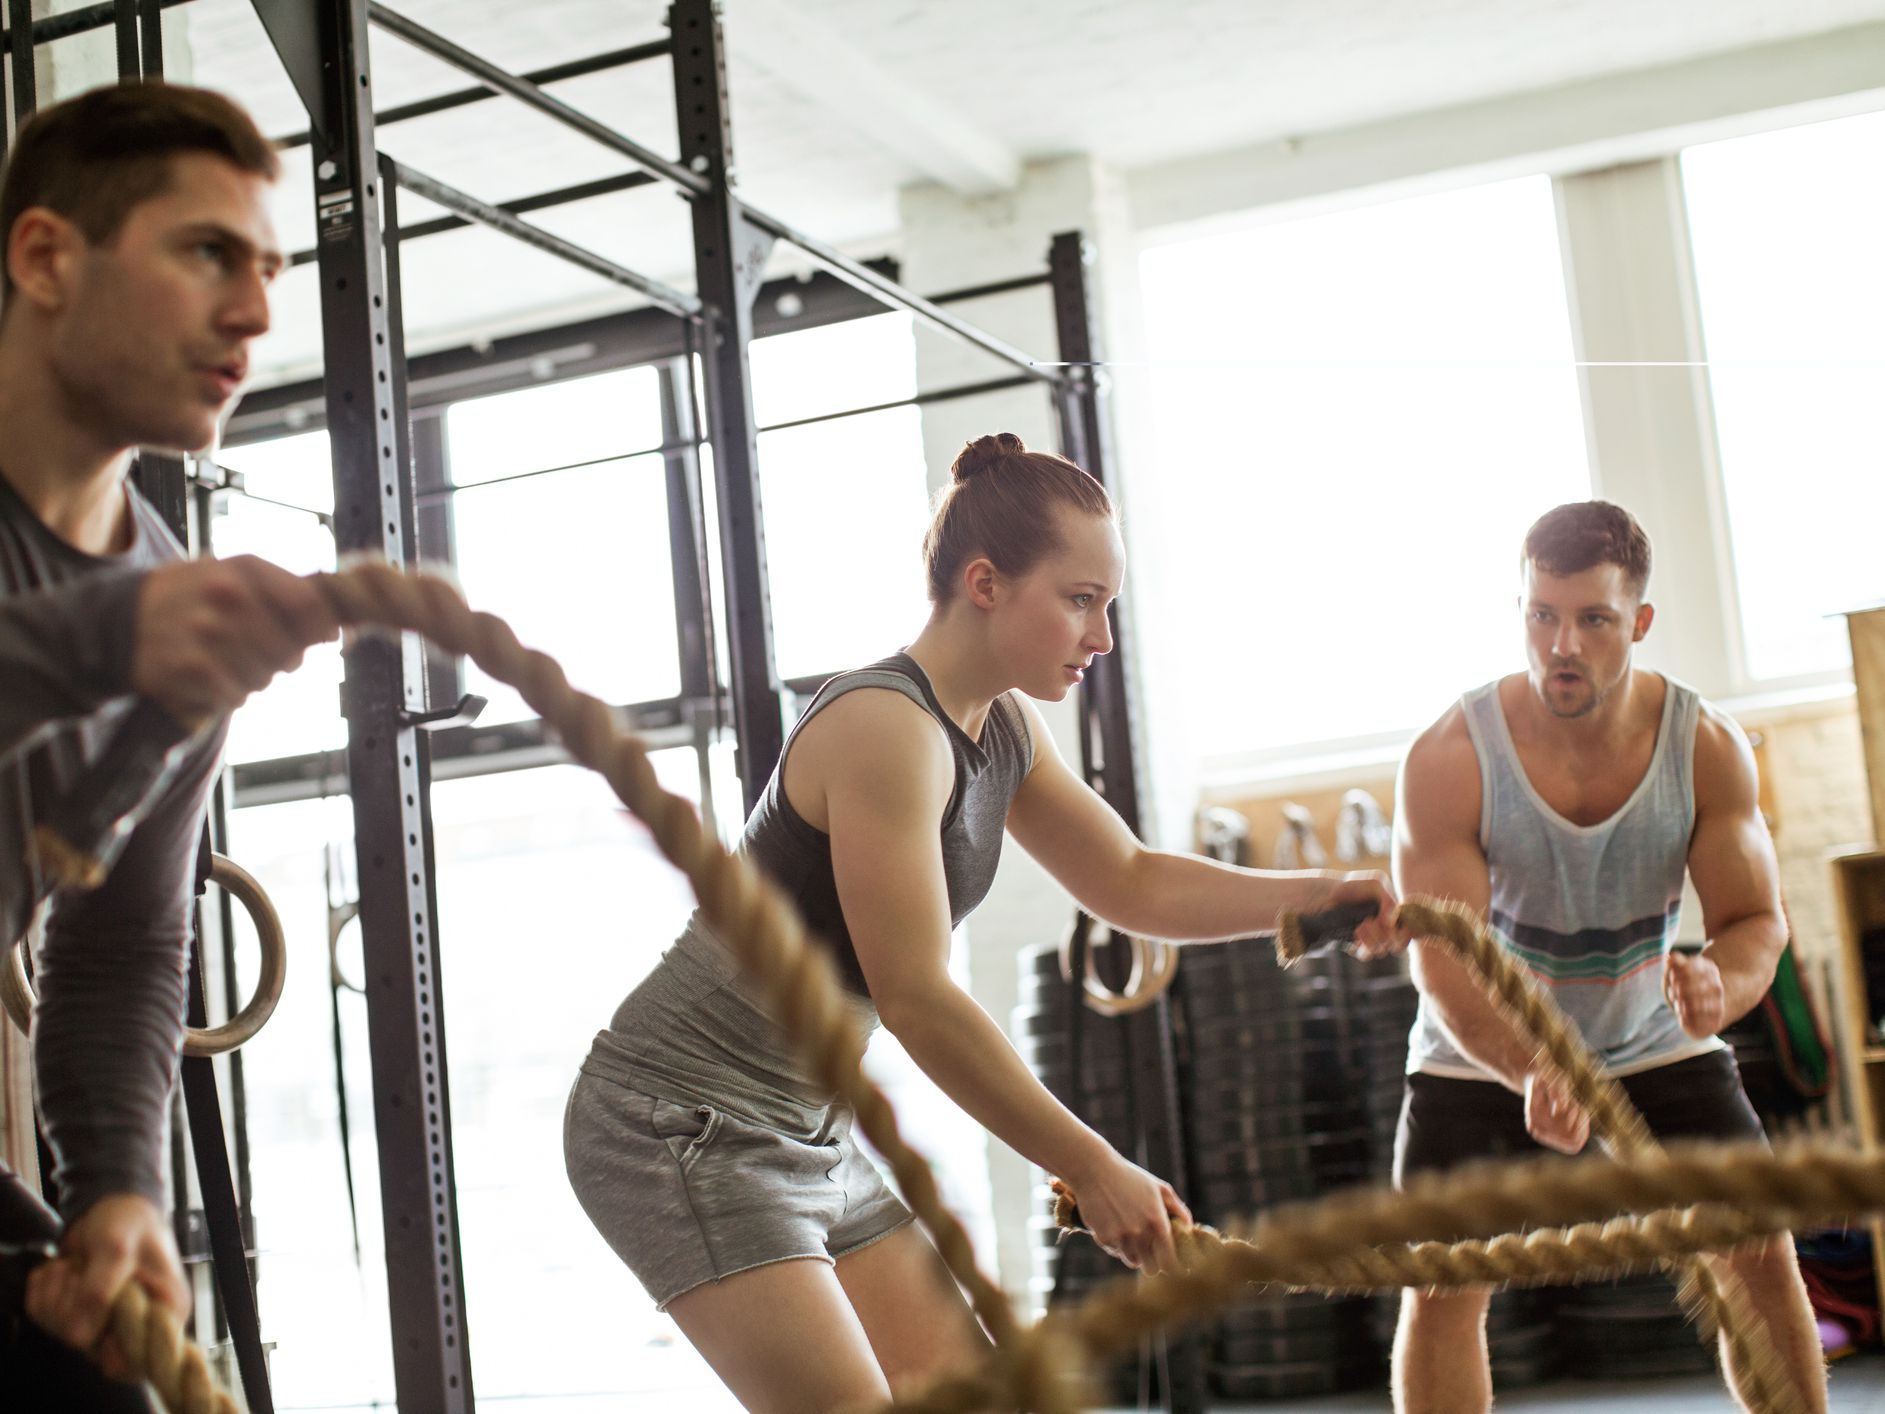 Crossfit and crossfit workouts